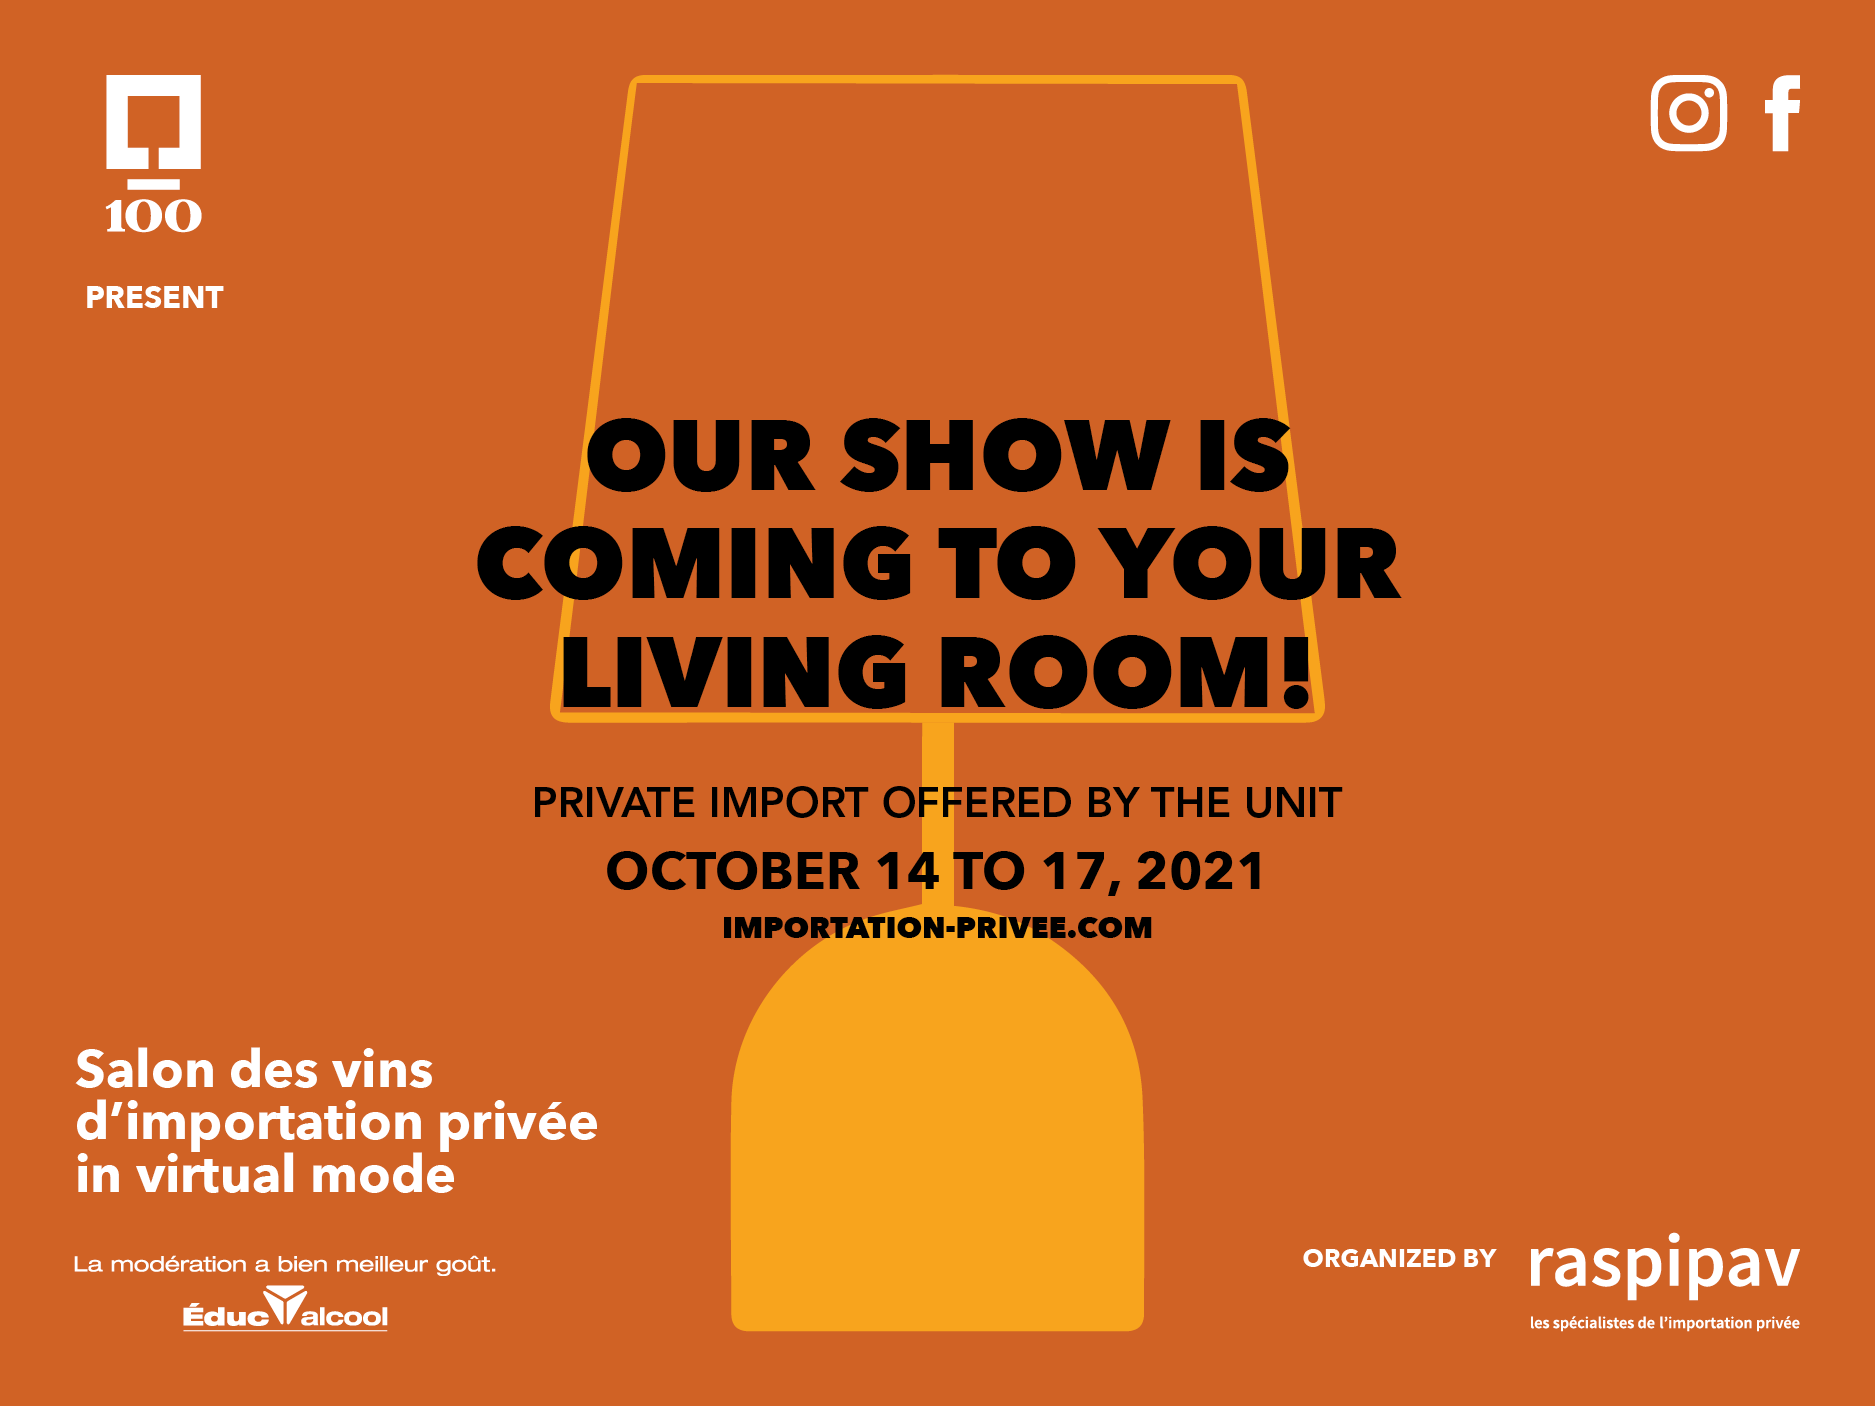 The SAQ is proud to be a partner of the 13th edition of the RASPIPAV which will take place from October 14 to October 17, 2021.